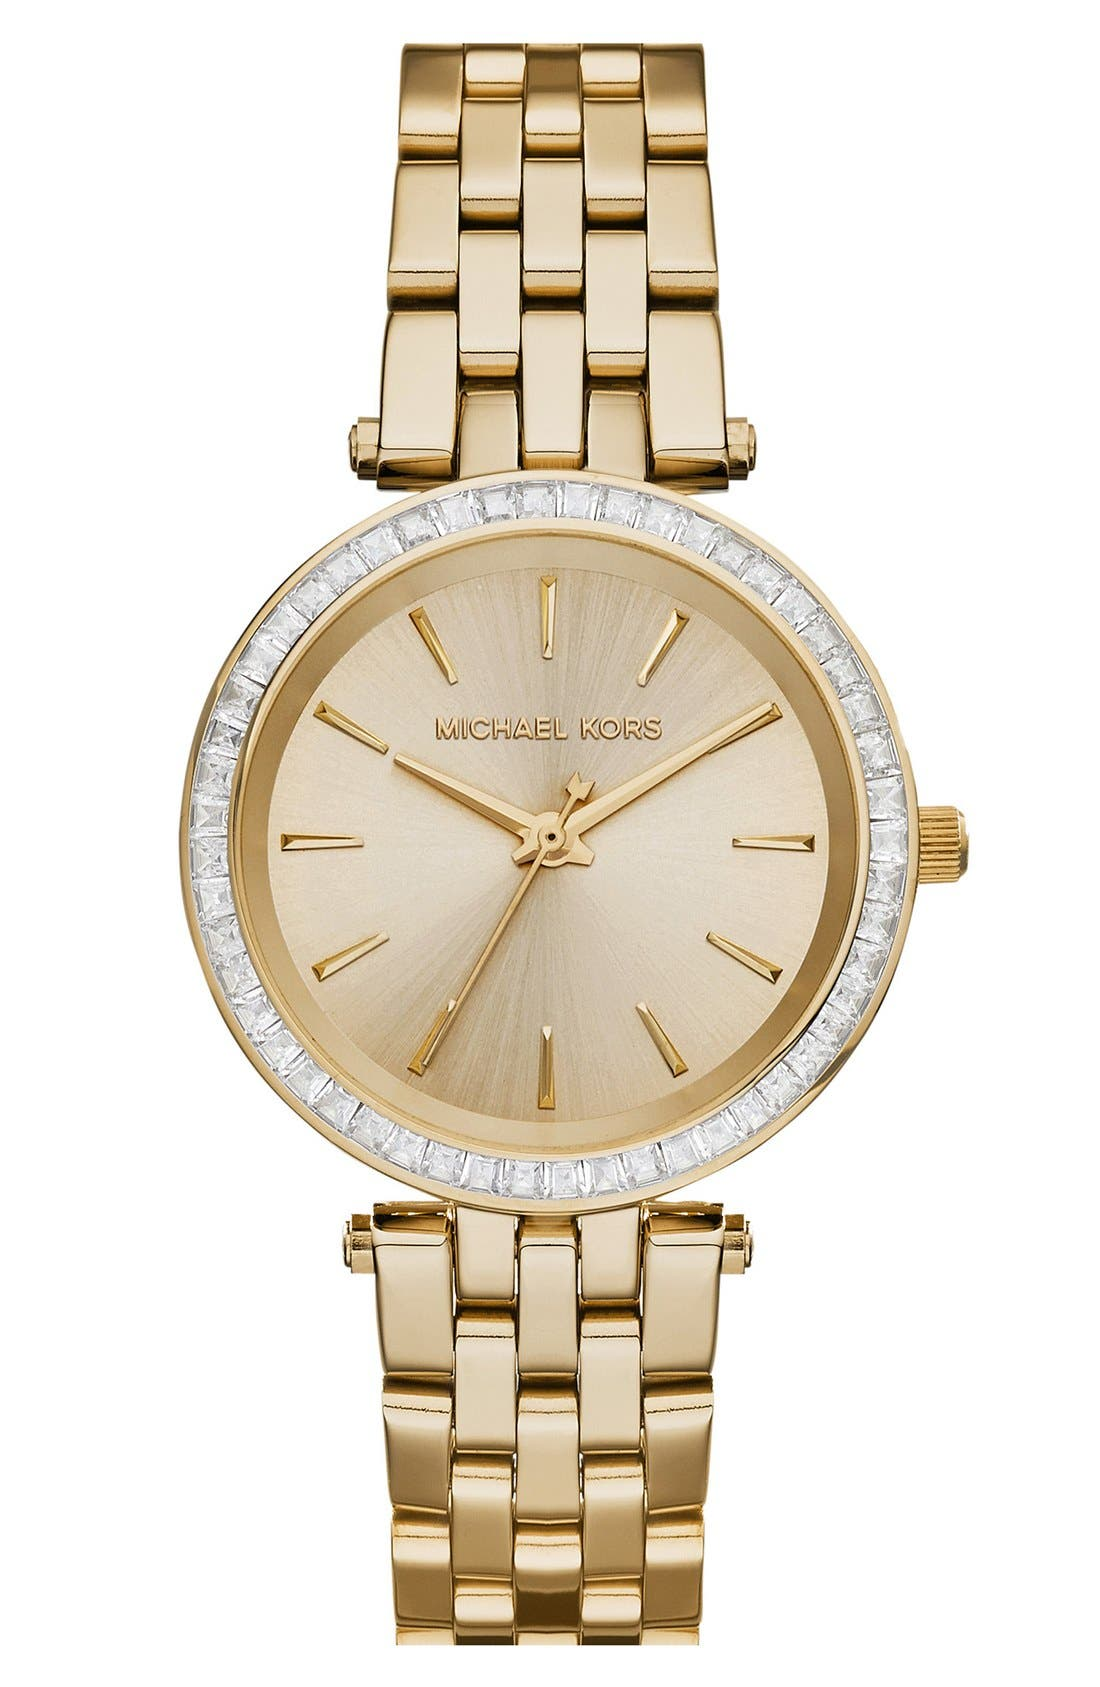 Main Image - Michael Kors 'Mini Darci' Round Bracelet Watch, 33mm